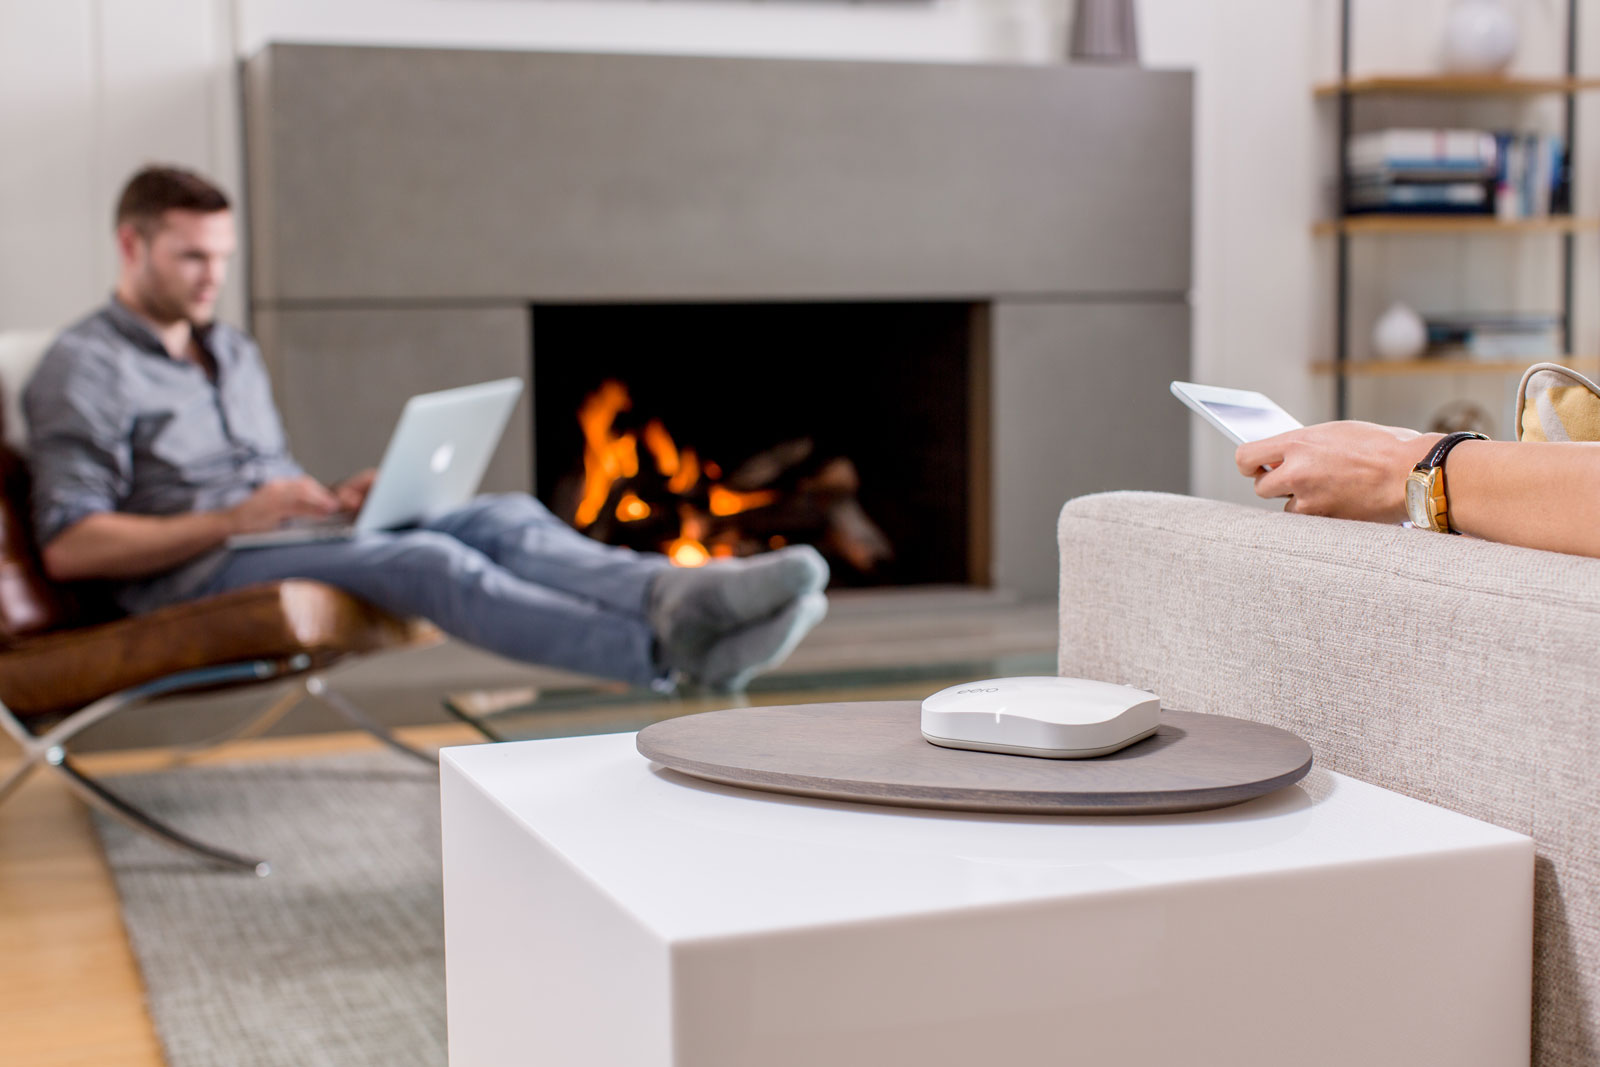 Eero thinks its designs are nice enough for its devices to perch on end tables in the living room.